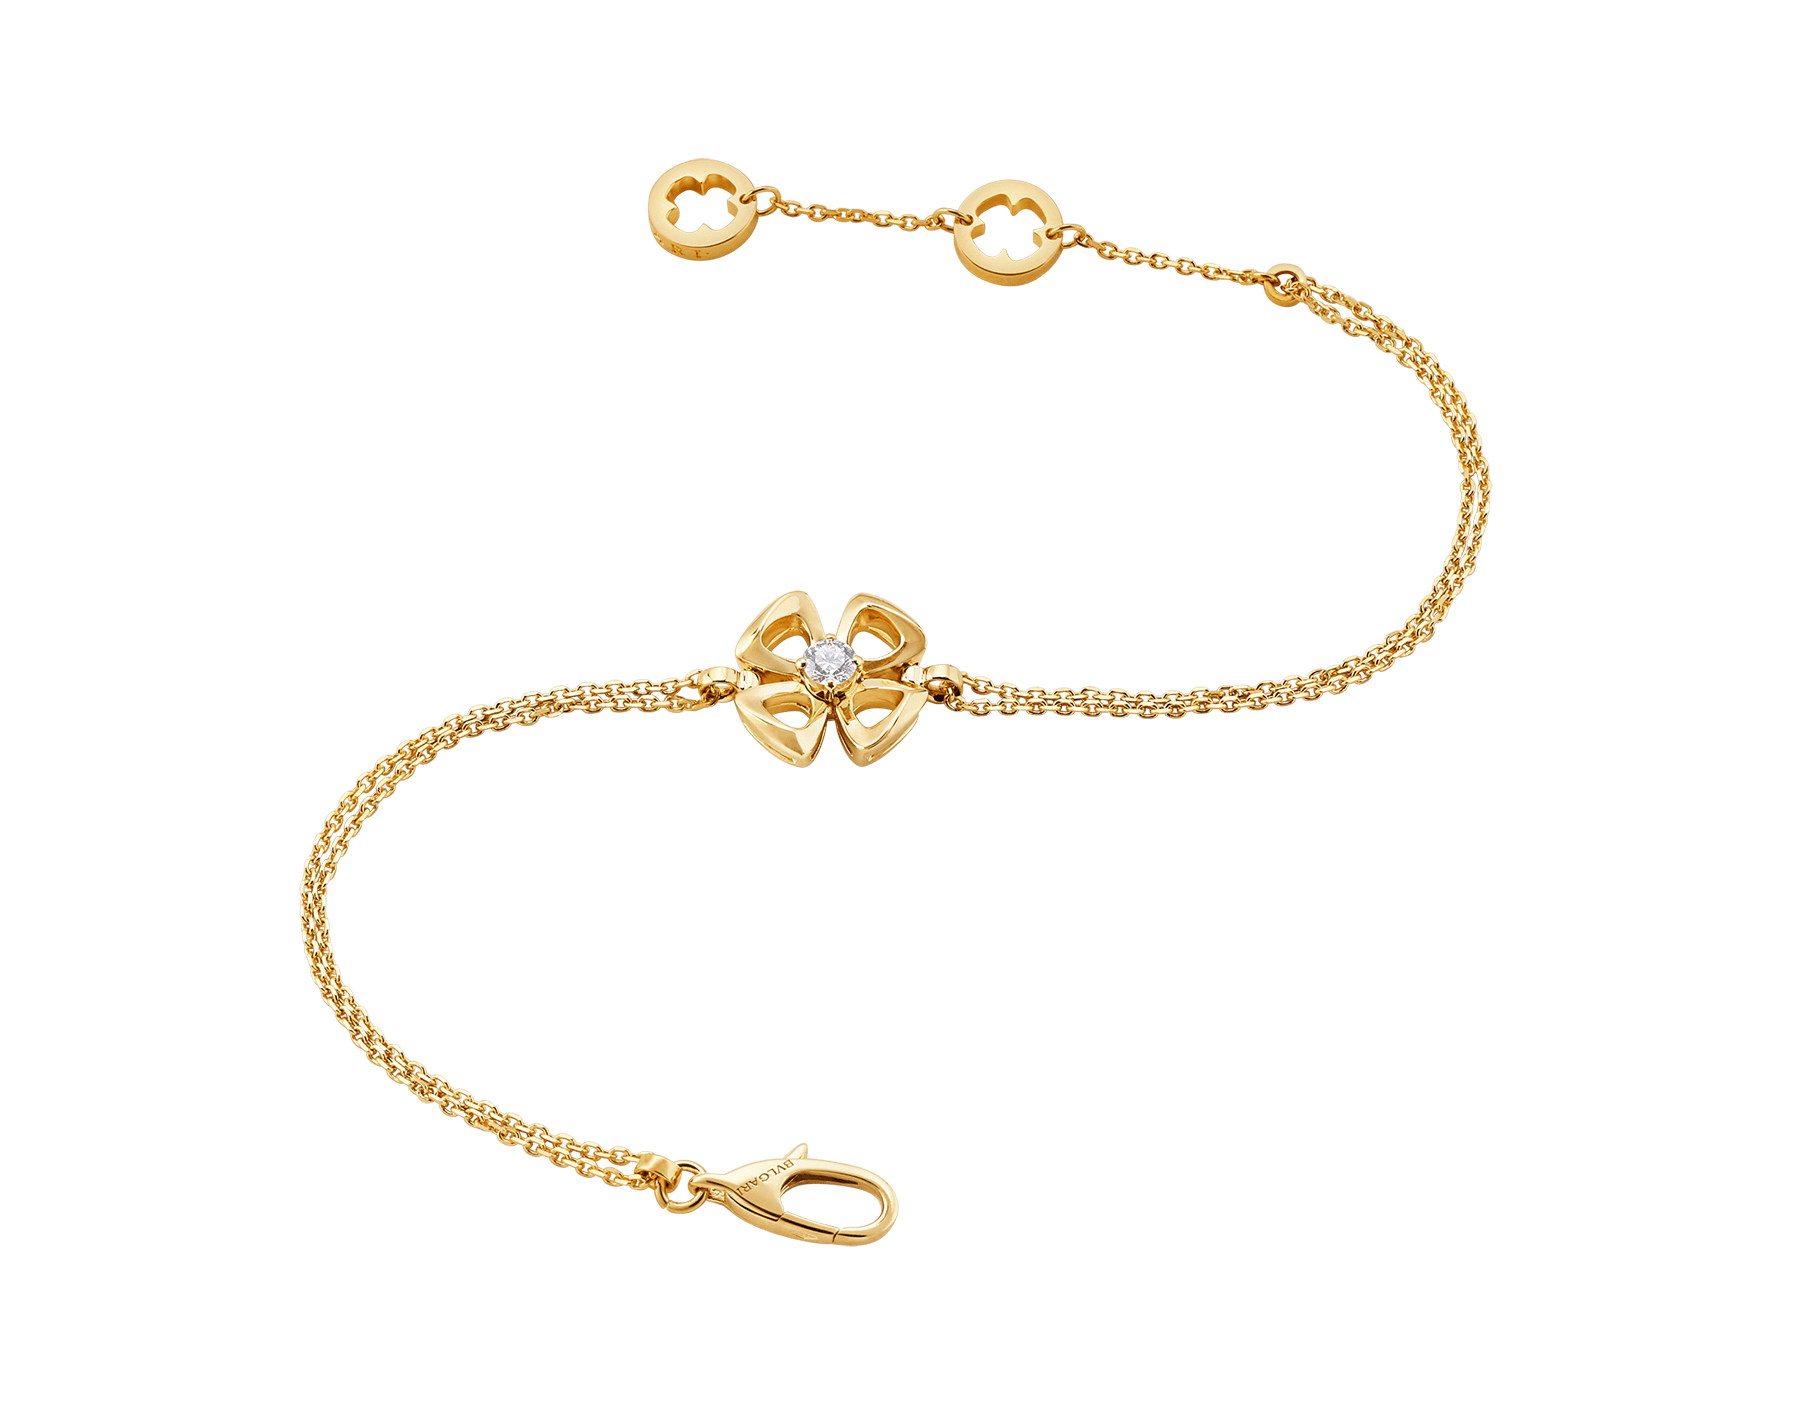 Fiorever 18 kt yellow gold bracelet set with a central diamond. BR858992 image 2